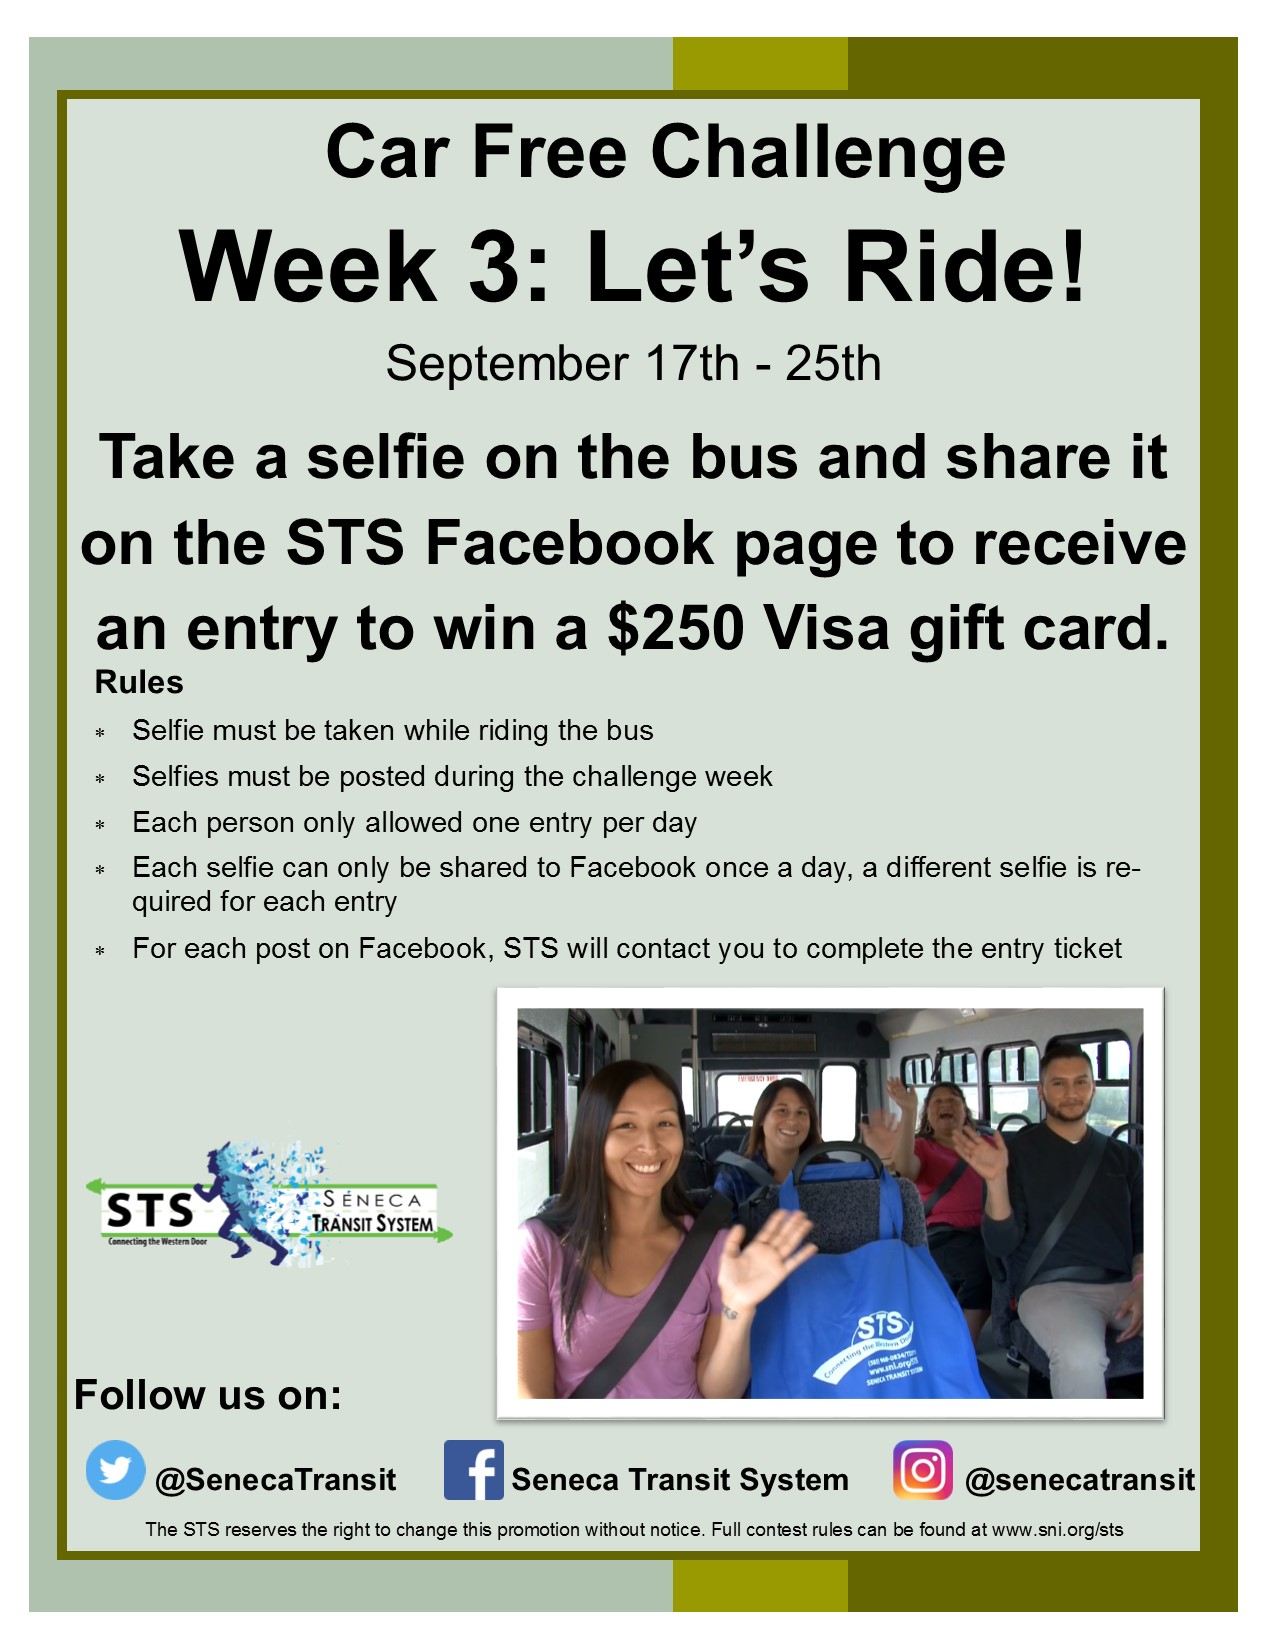 Seneca Transit Promo - Let's Ride! September 17th - 25th.